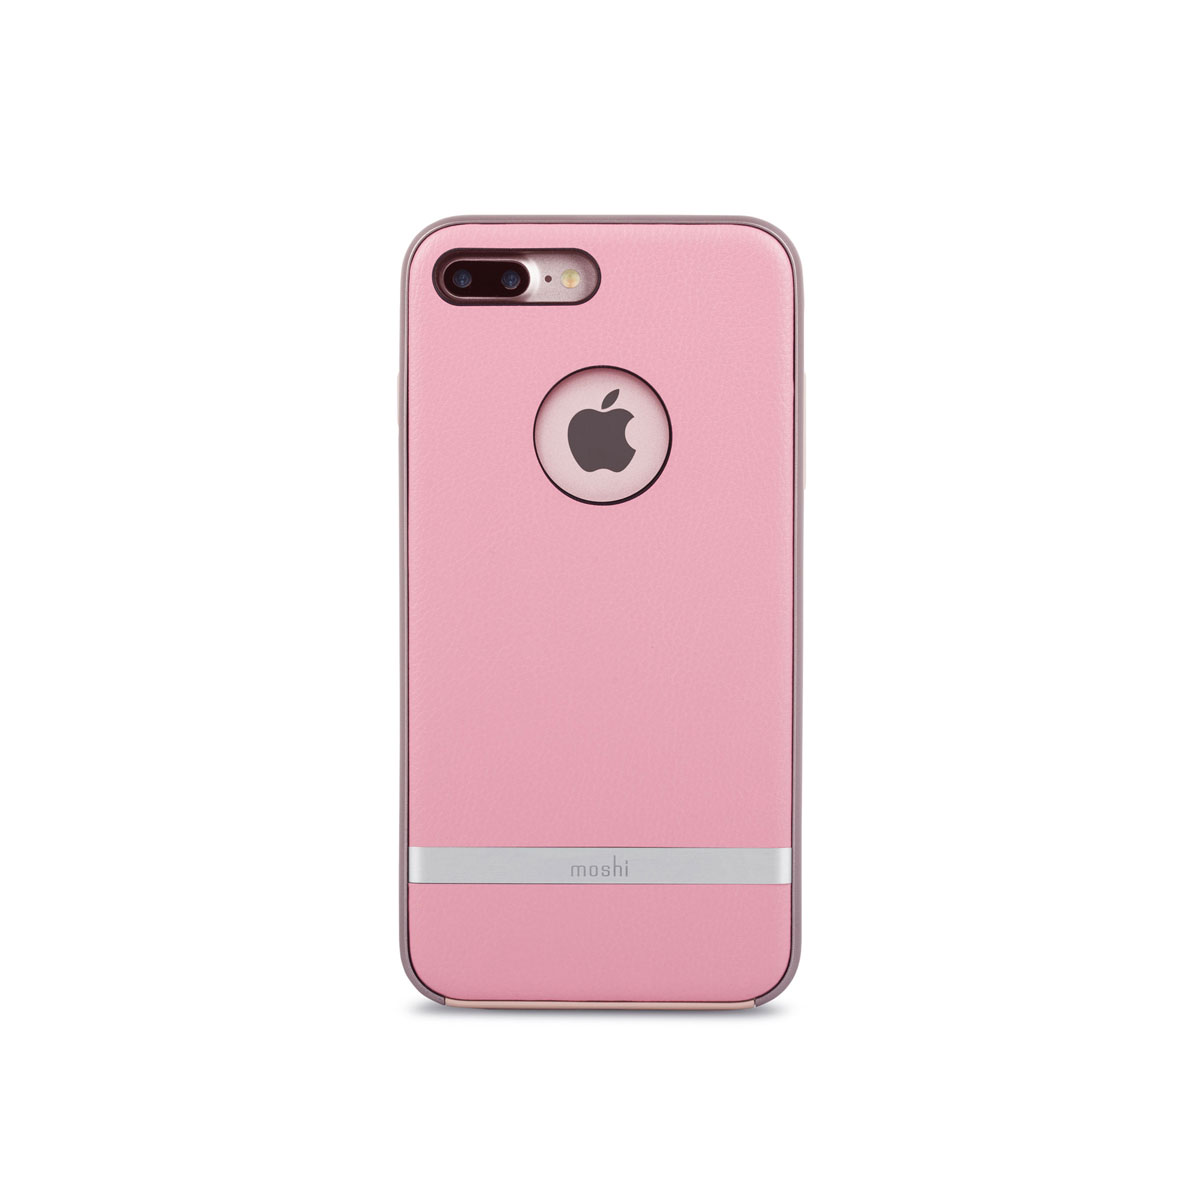 Moshi - Napa Leather Case for iPhone 7 Plus - Pink